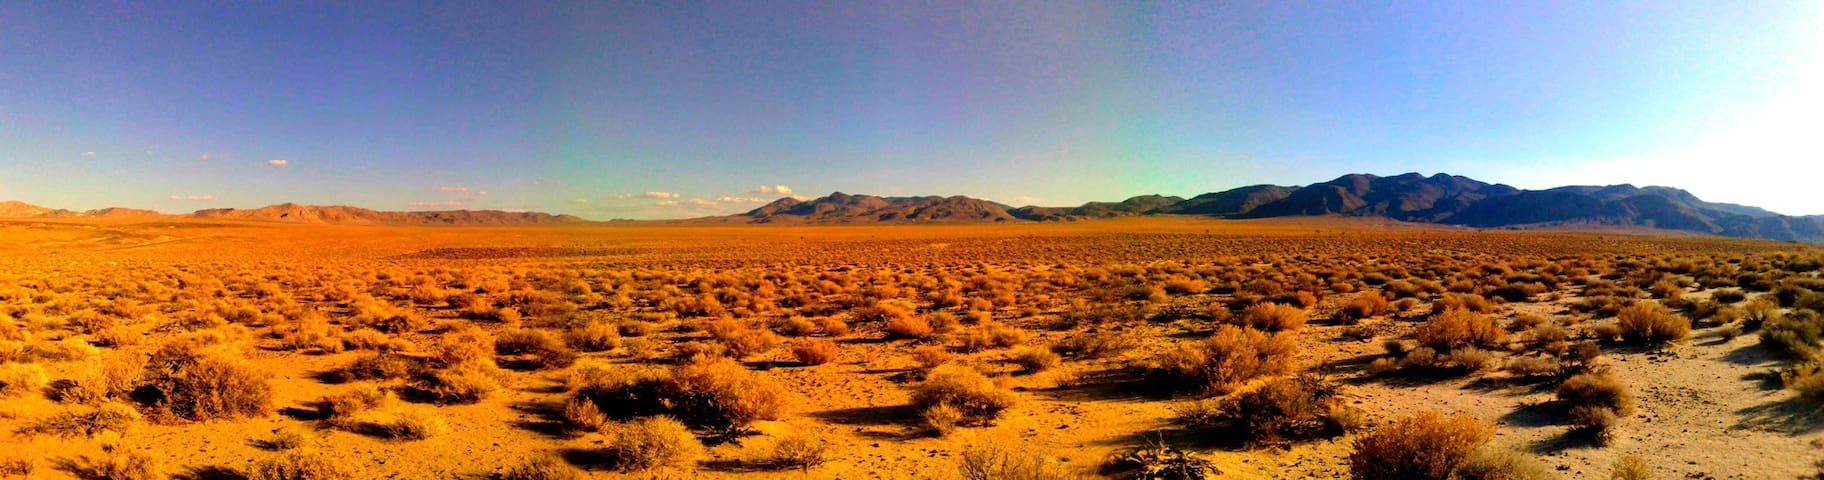 Kern land for Filming or Camping. - Kern/Mojave